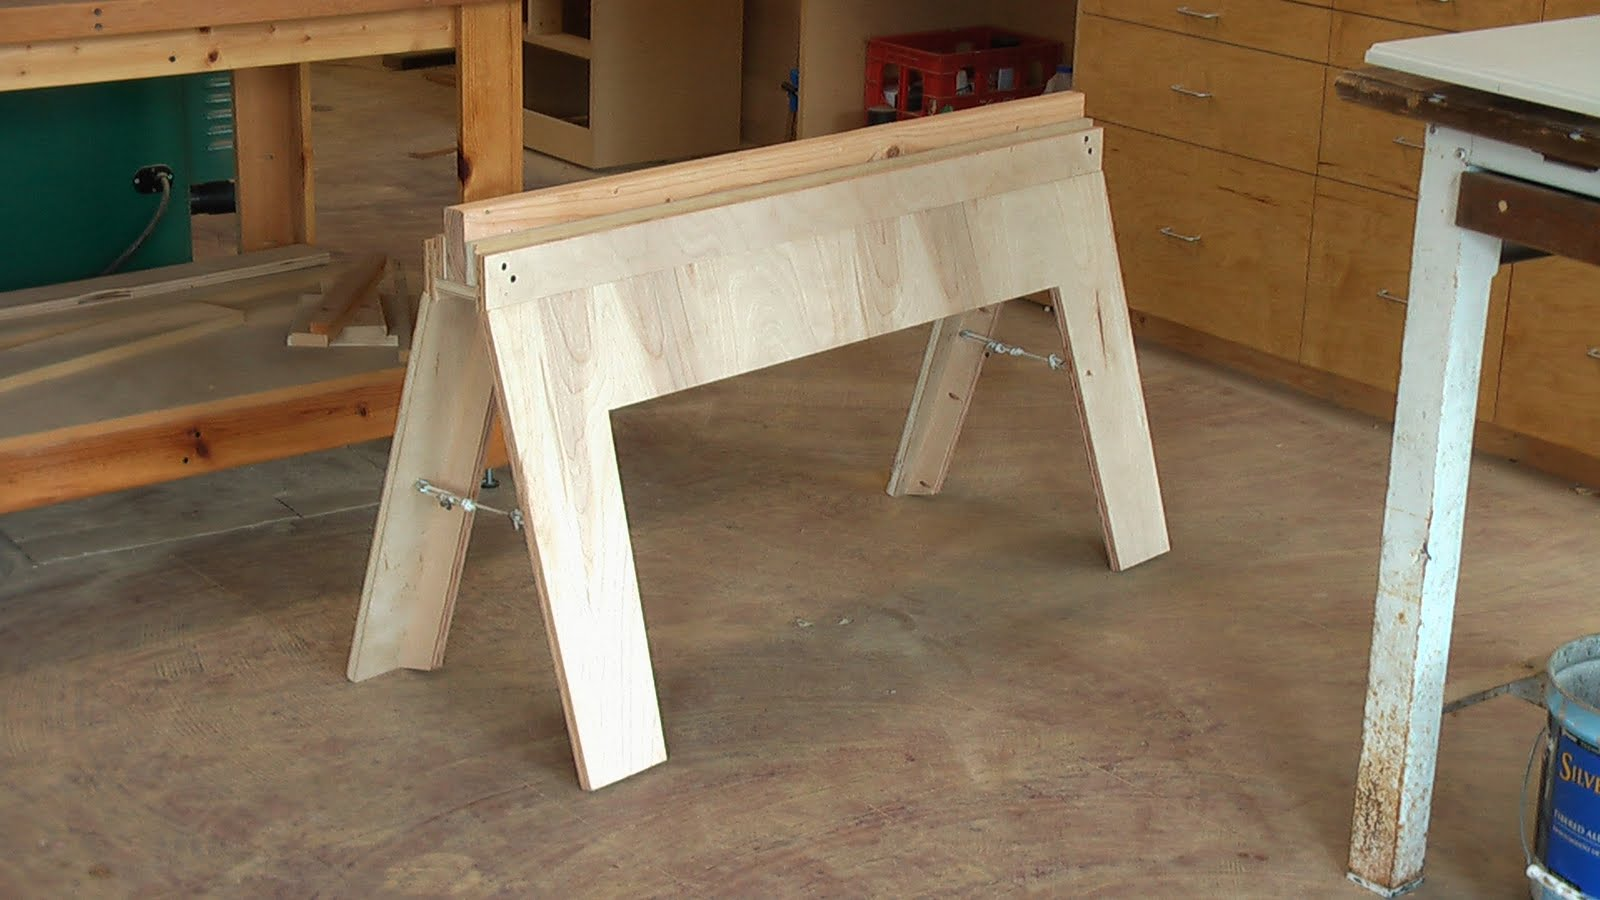 The Woodworking Trip: DIY Folding Sawhorses- First Design